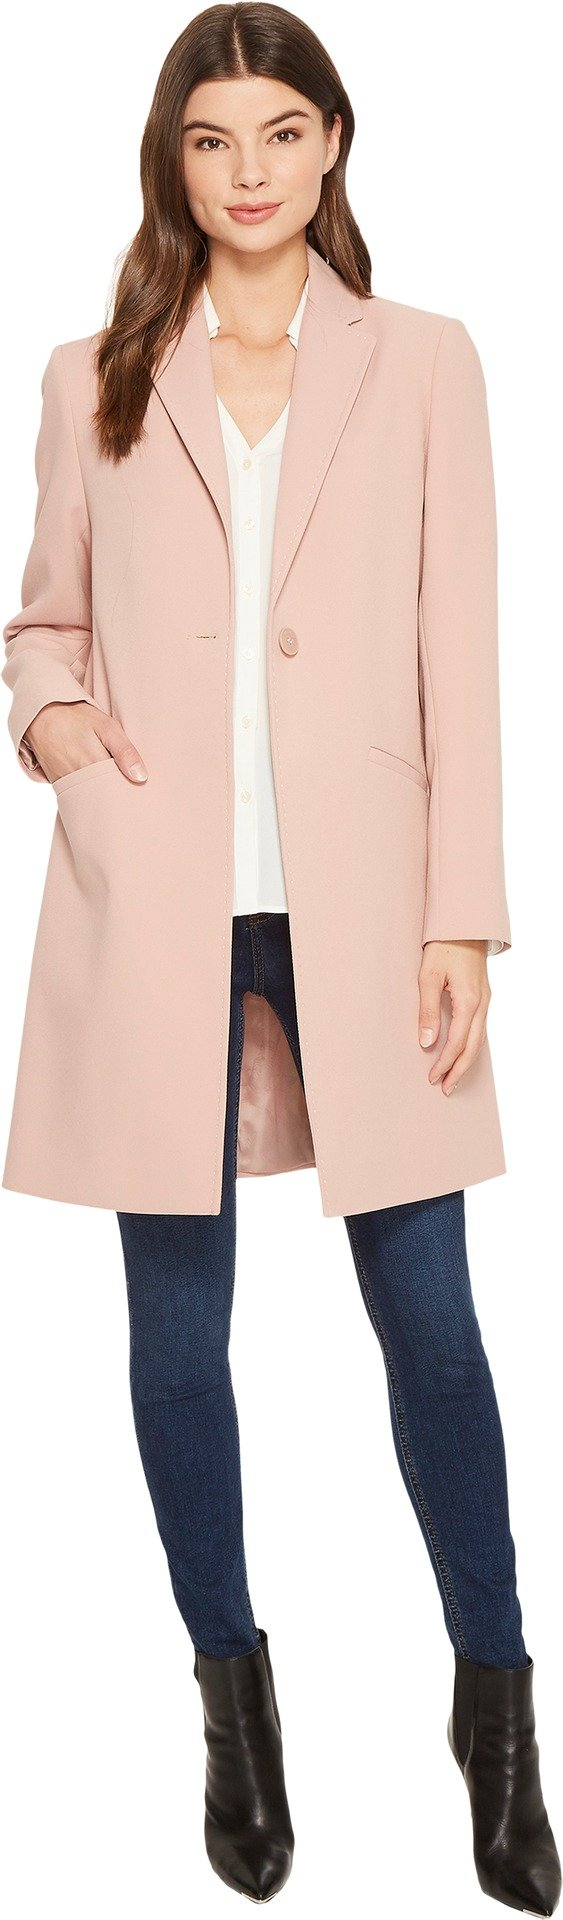 Lauren by Ralph Lauren Women's Crepe Reefer Blush Large by Lauren by Ralph Lauren